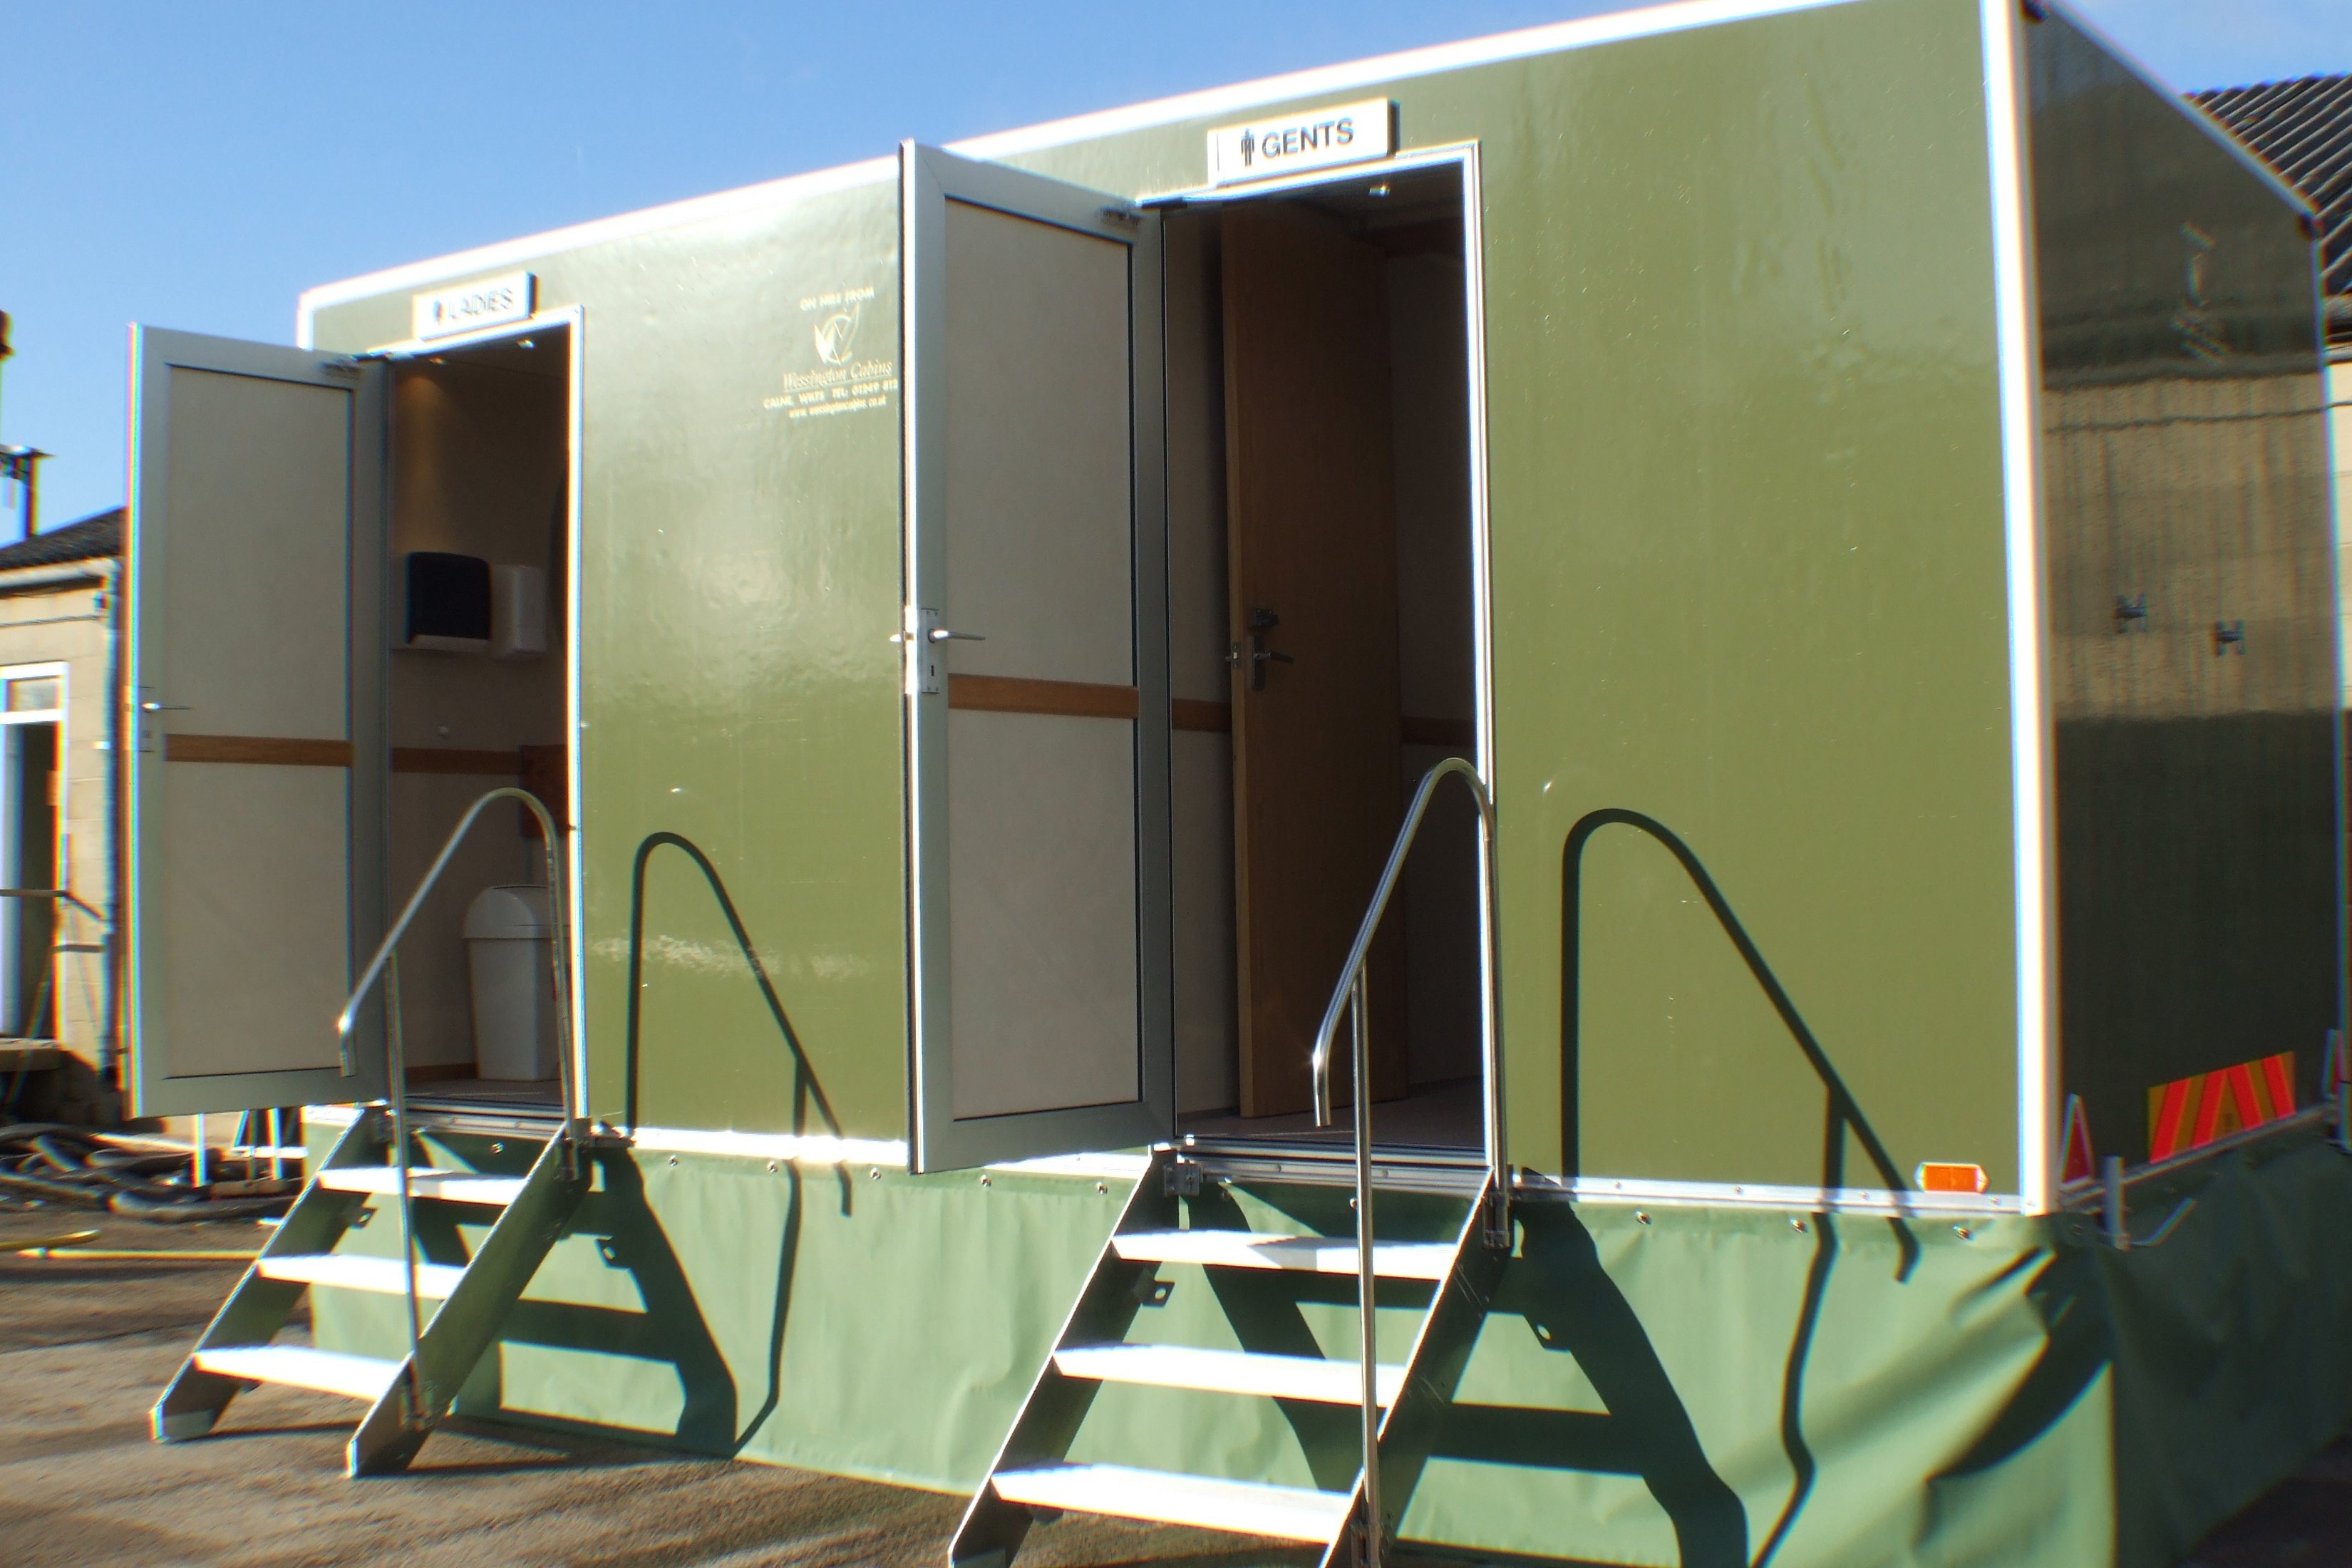 Hire portable toilets, cabins and showers